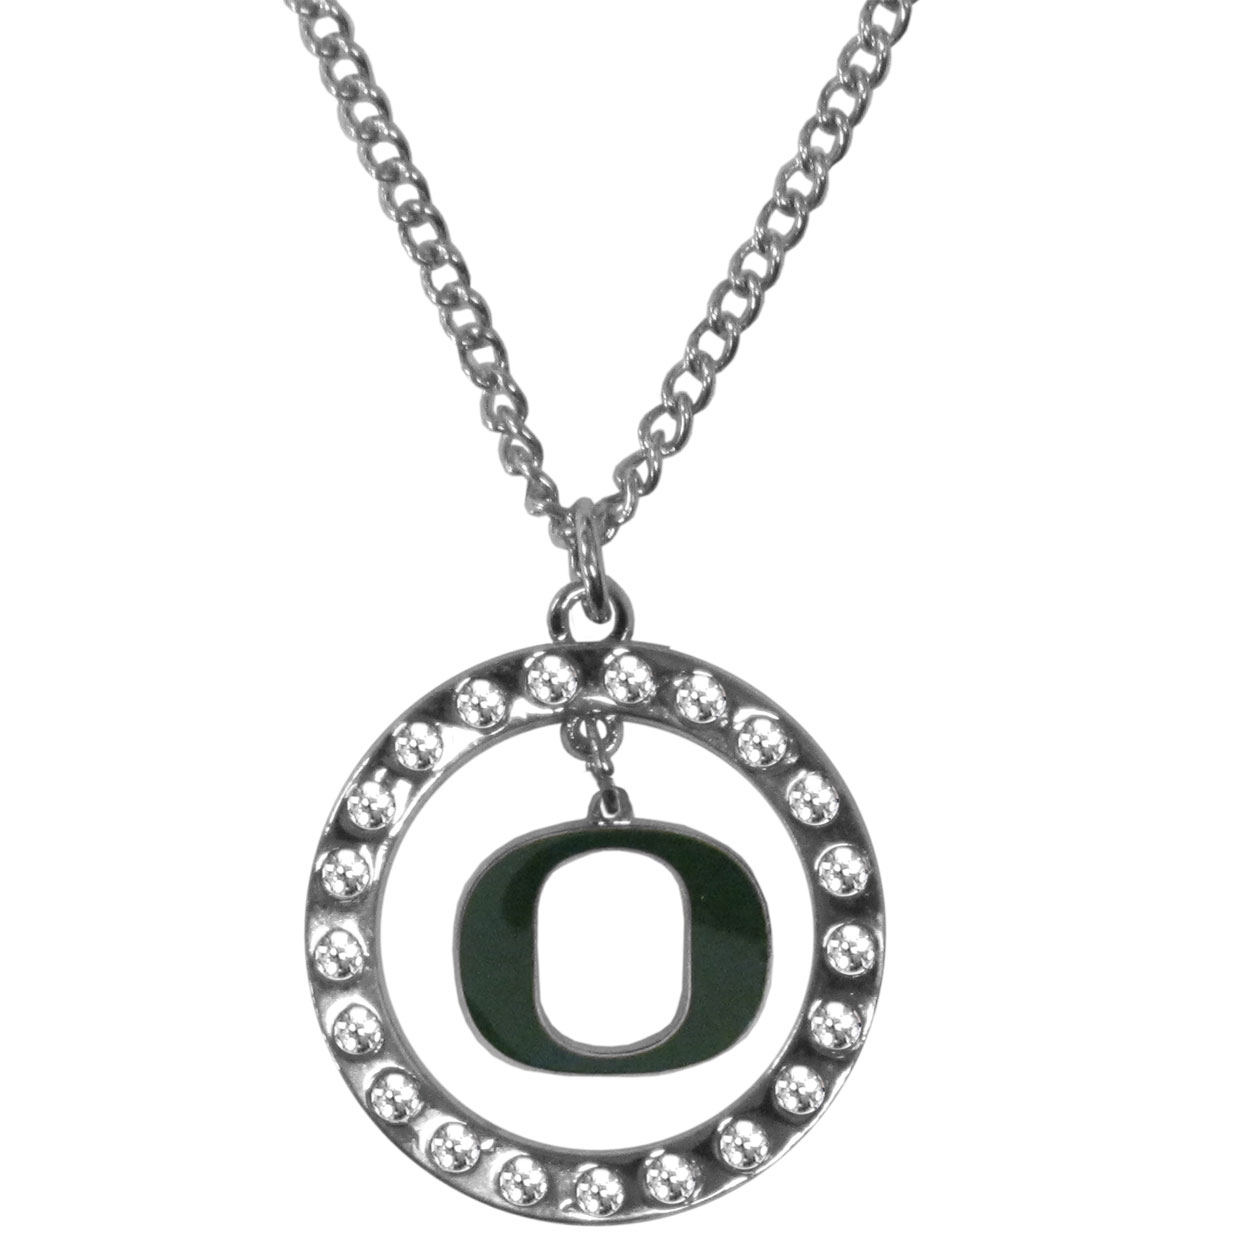 Oregon Ducks Rhinestone Hoop Necklaces - Our Oregon Ducks rhinestone hoop necklace comes on an 18 inch chain and features a hoop covered in rhinestones with a high polish chrome finish and a cast and enameled team charm dangling in the center.